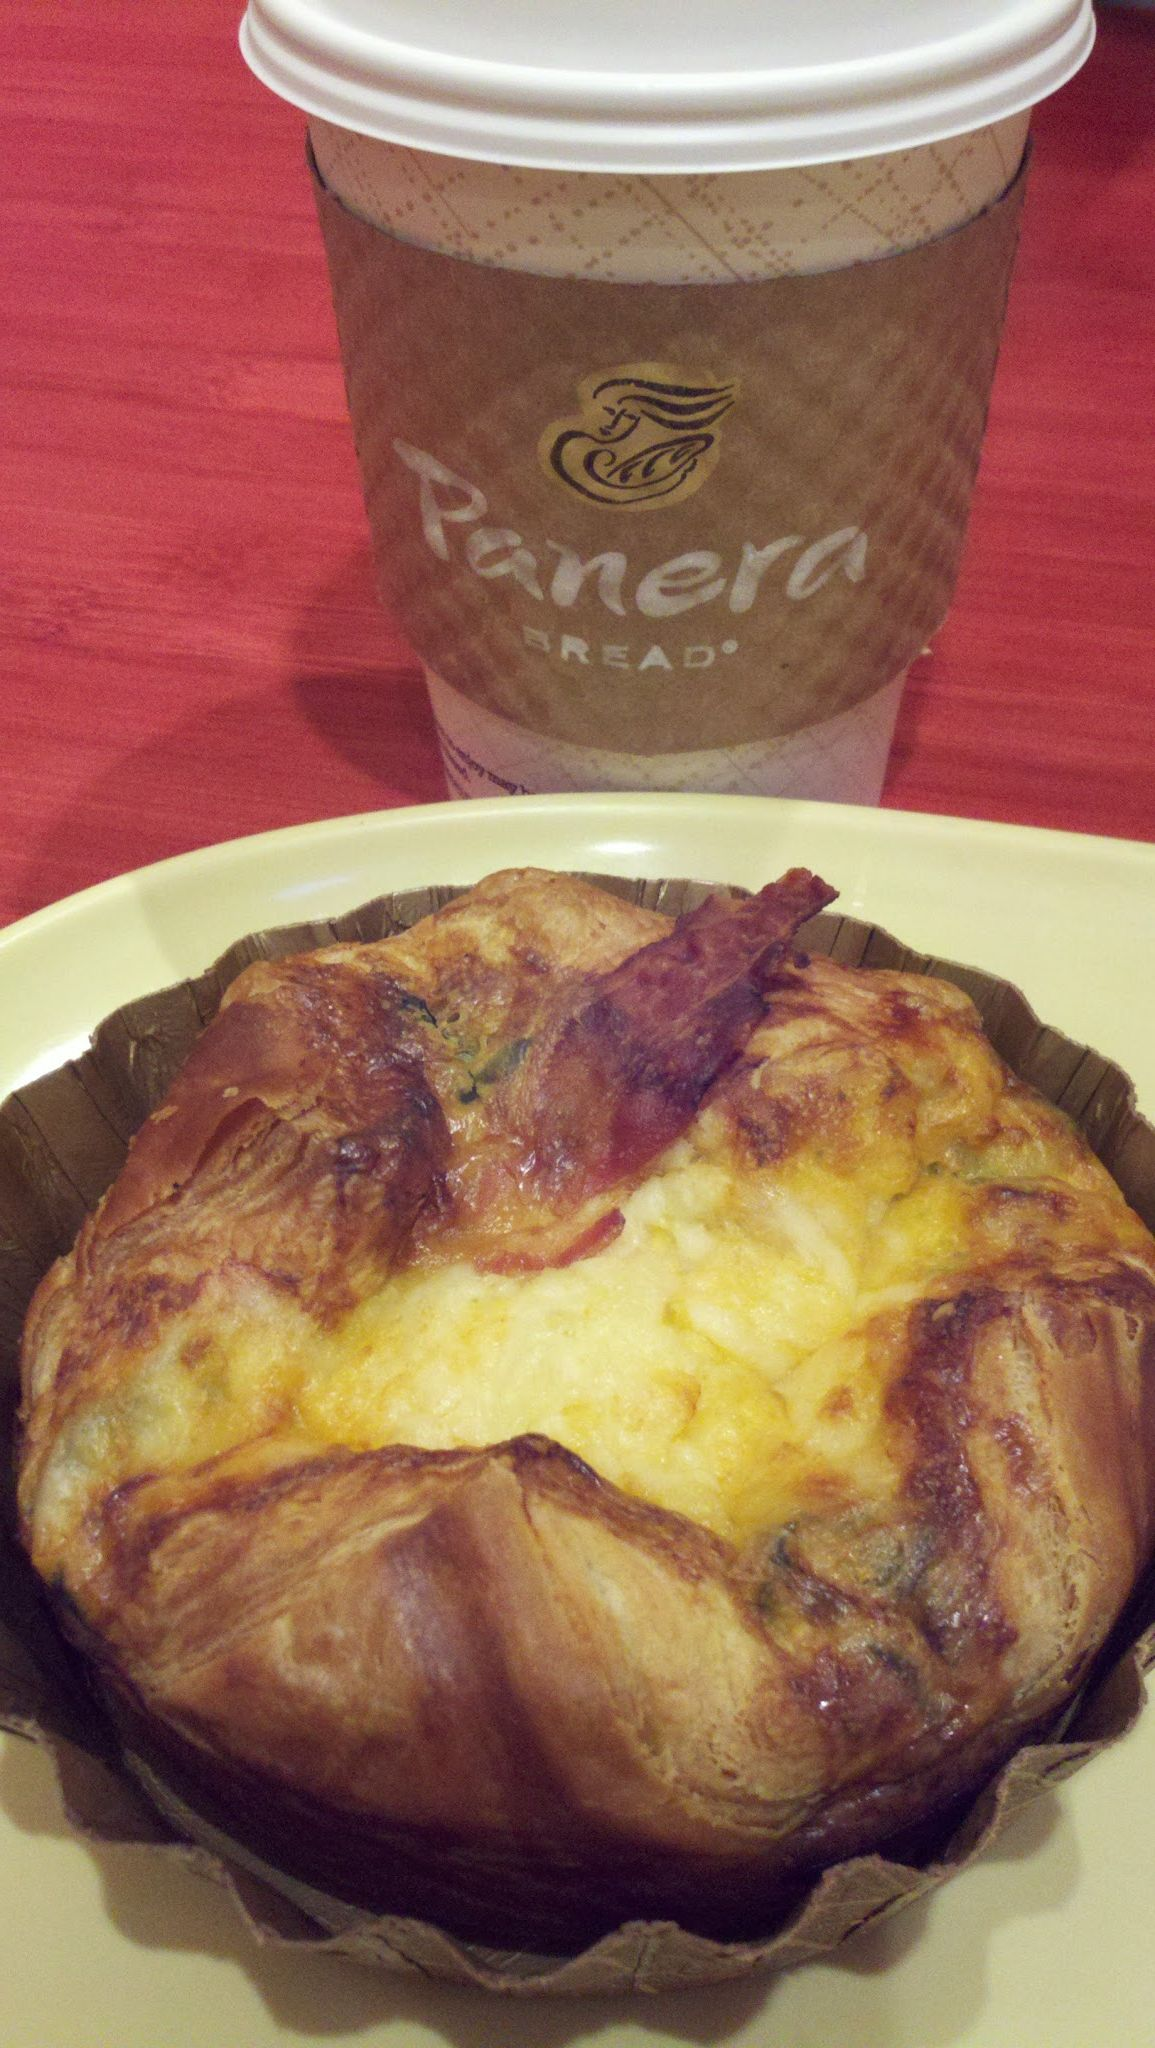 A spinach and bacon soufflé with hazelnut coffee at @PaneraBread.  The coffee was free as reward for frequent use of #MyPanera card!